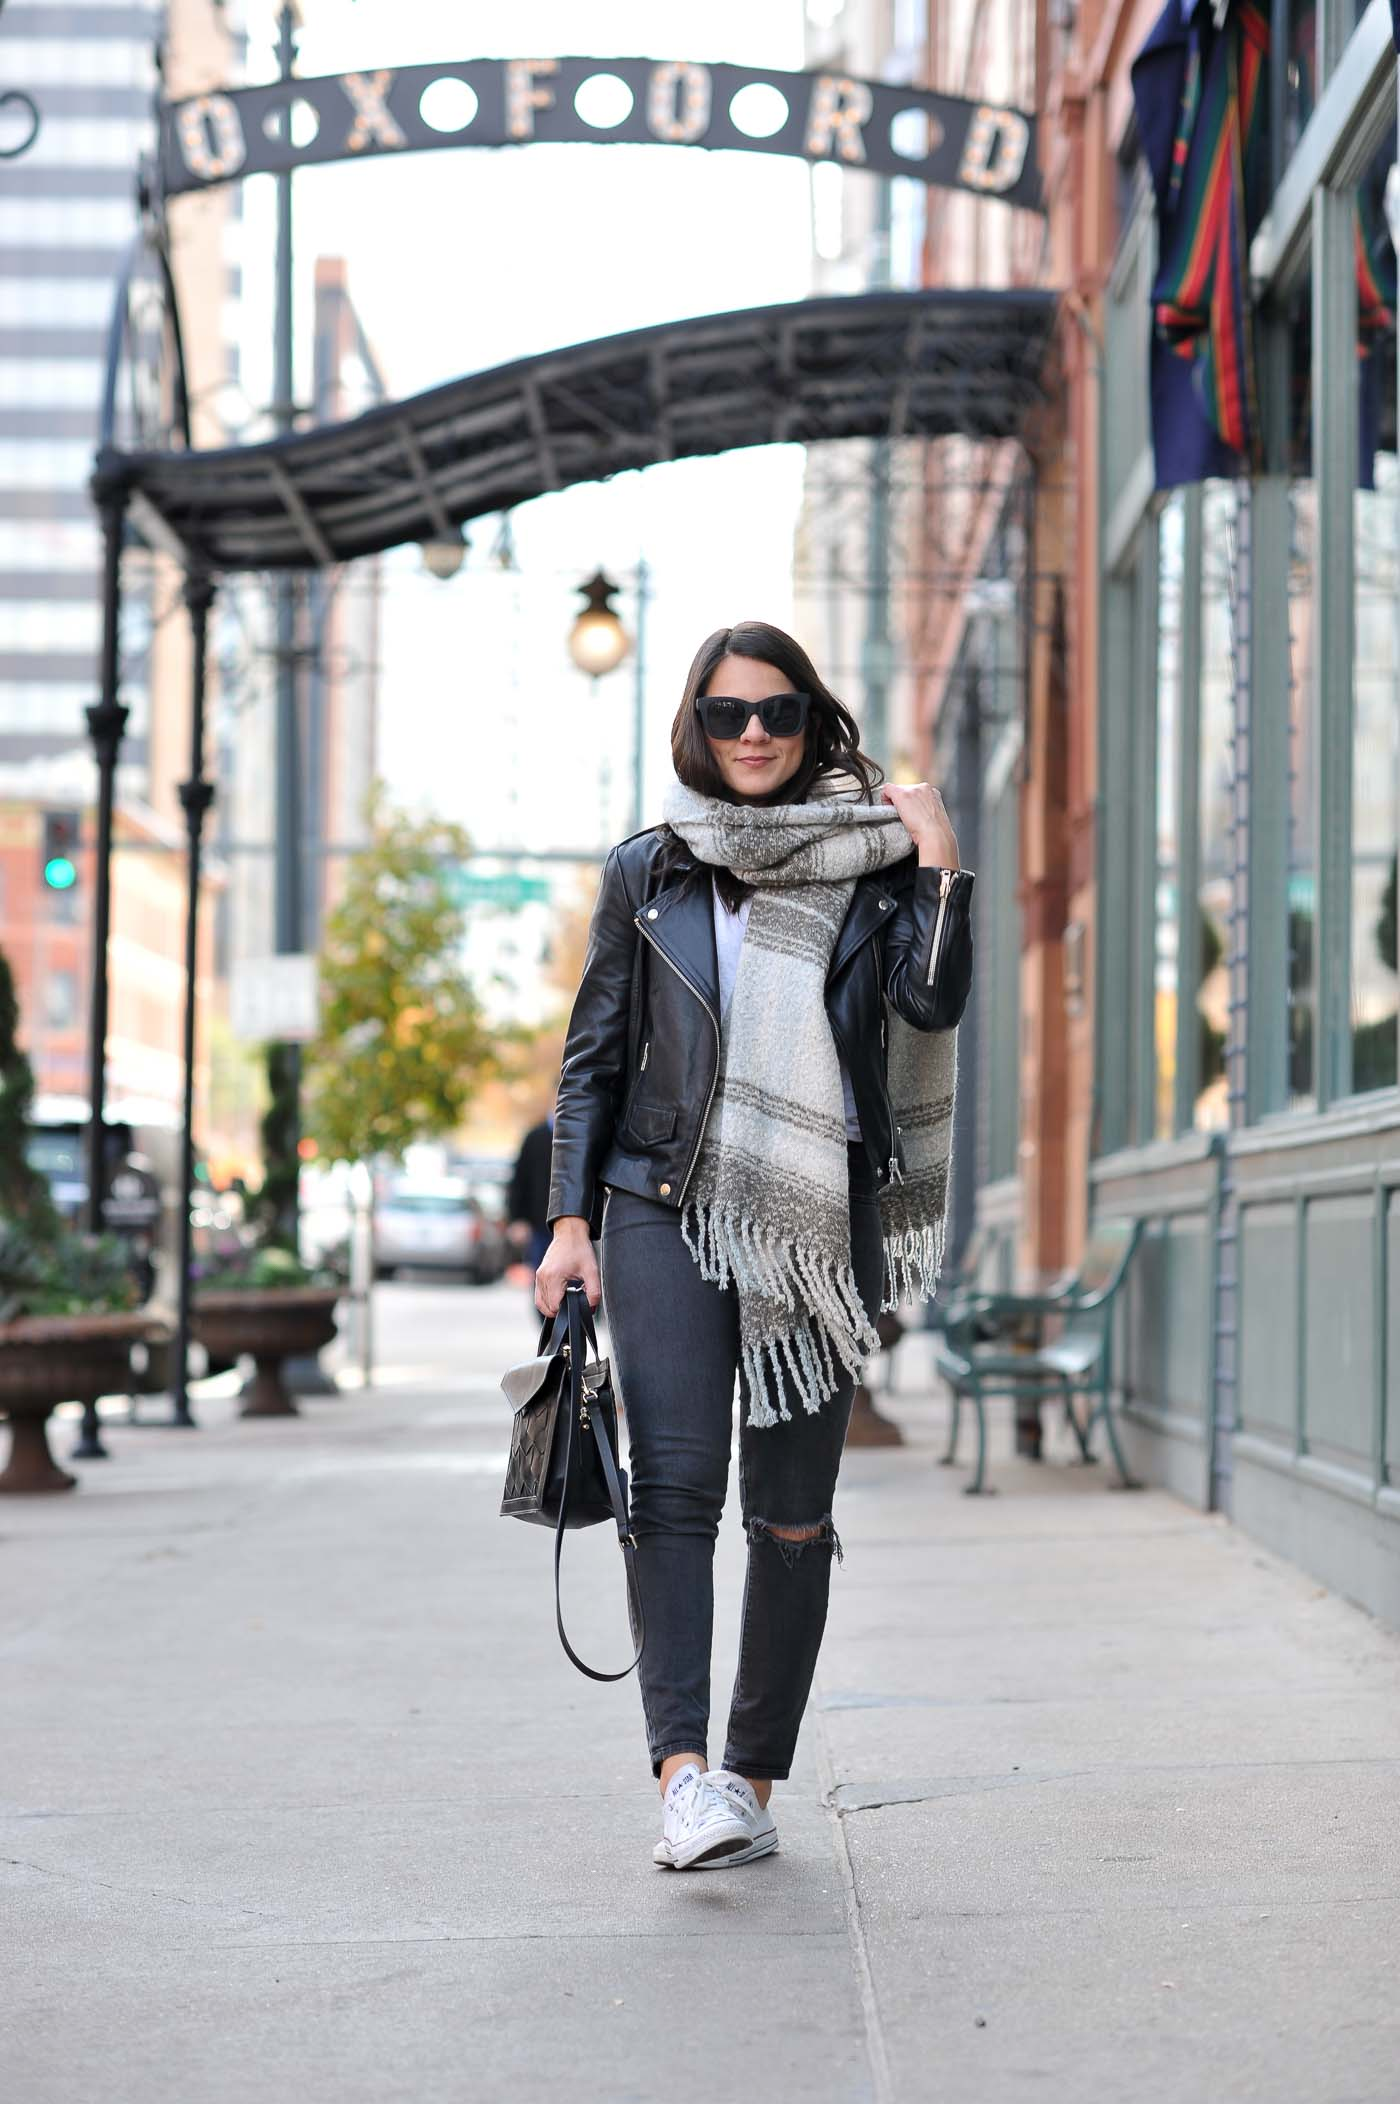 casual fall outfit ideas, cozy blanket scarf, black and grey outfits - My Style Vita @mystylevita